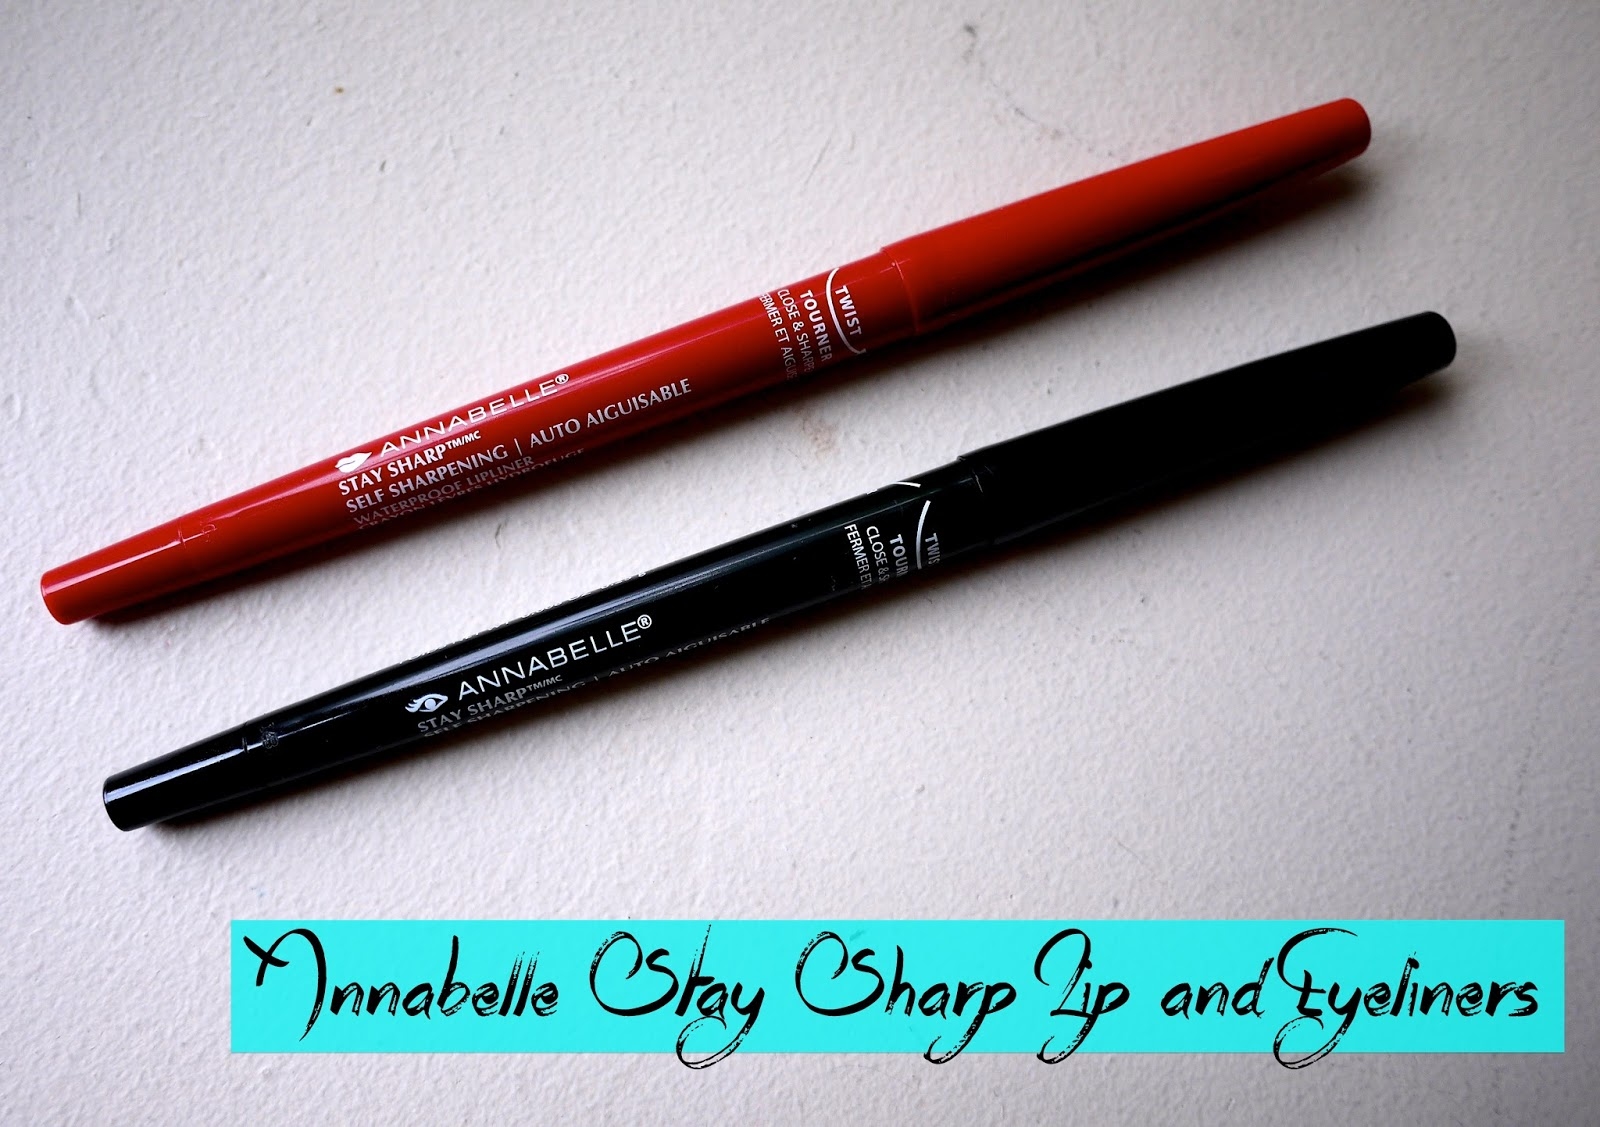 Annabelle Stay Sharp Waterproof Kohl Eyeliner and Lipliner glam red go black review swatch